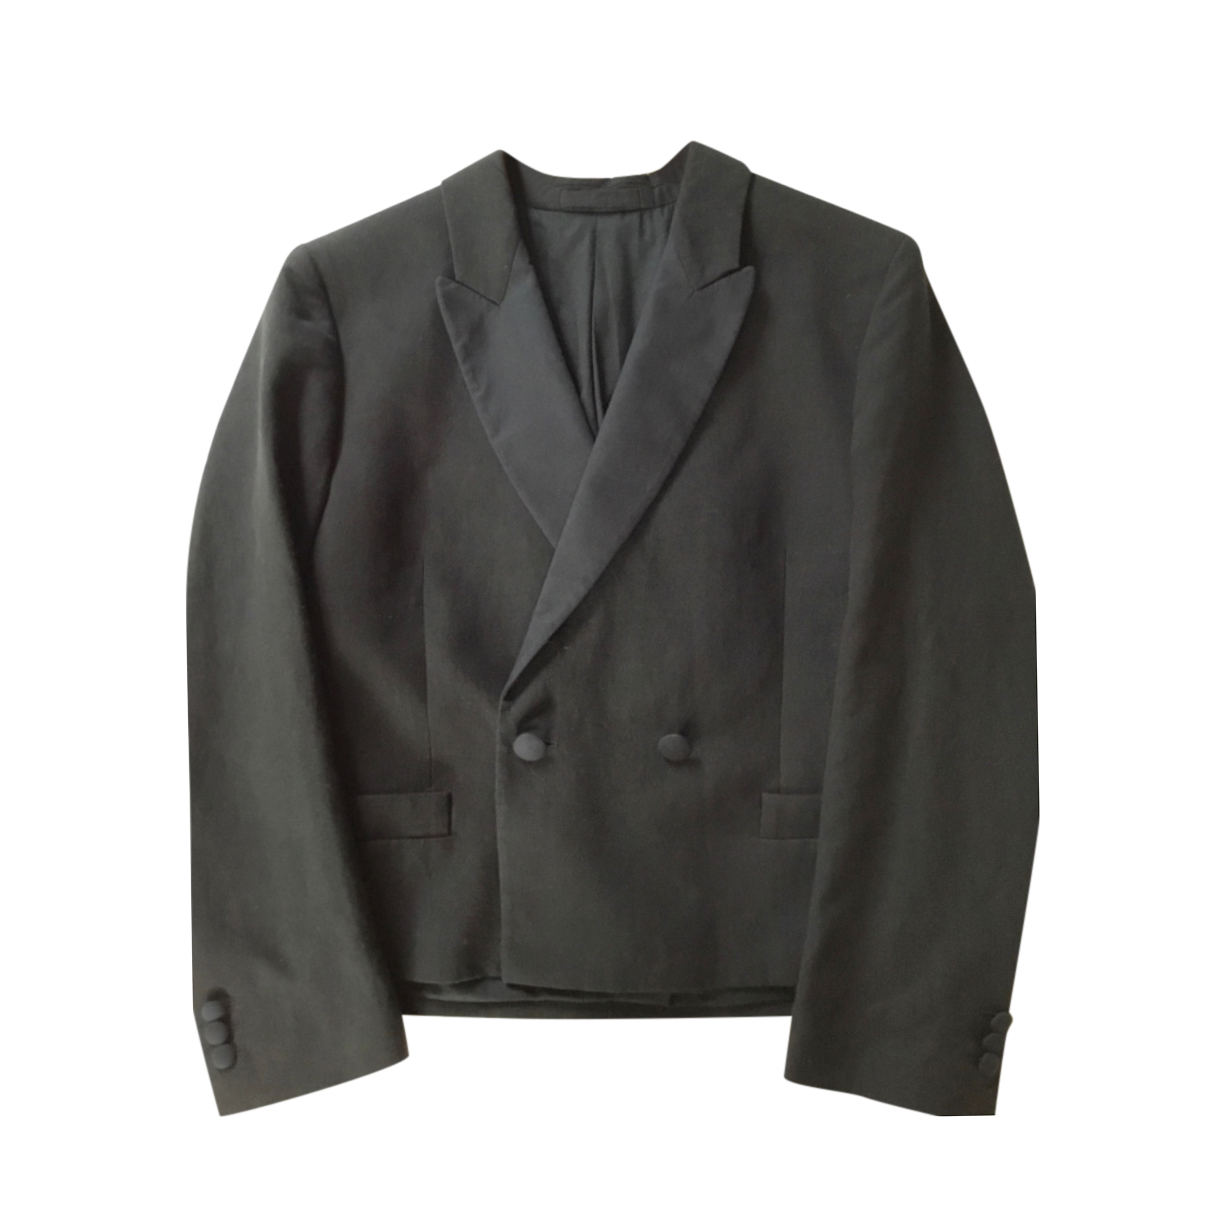 Margaret Howell Black Tailored Double Breasted Jacket.